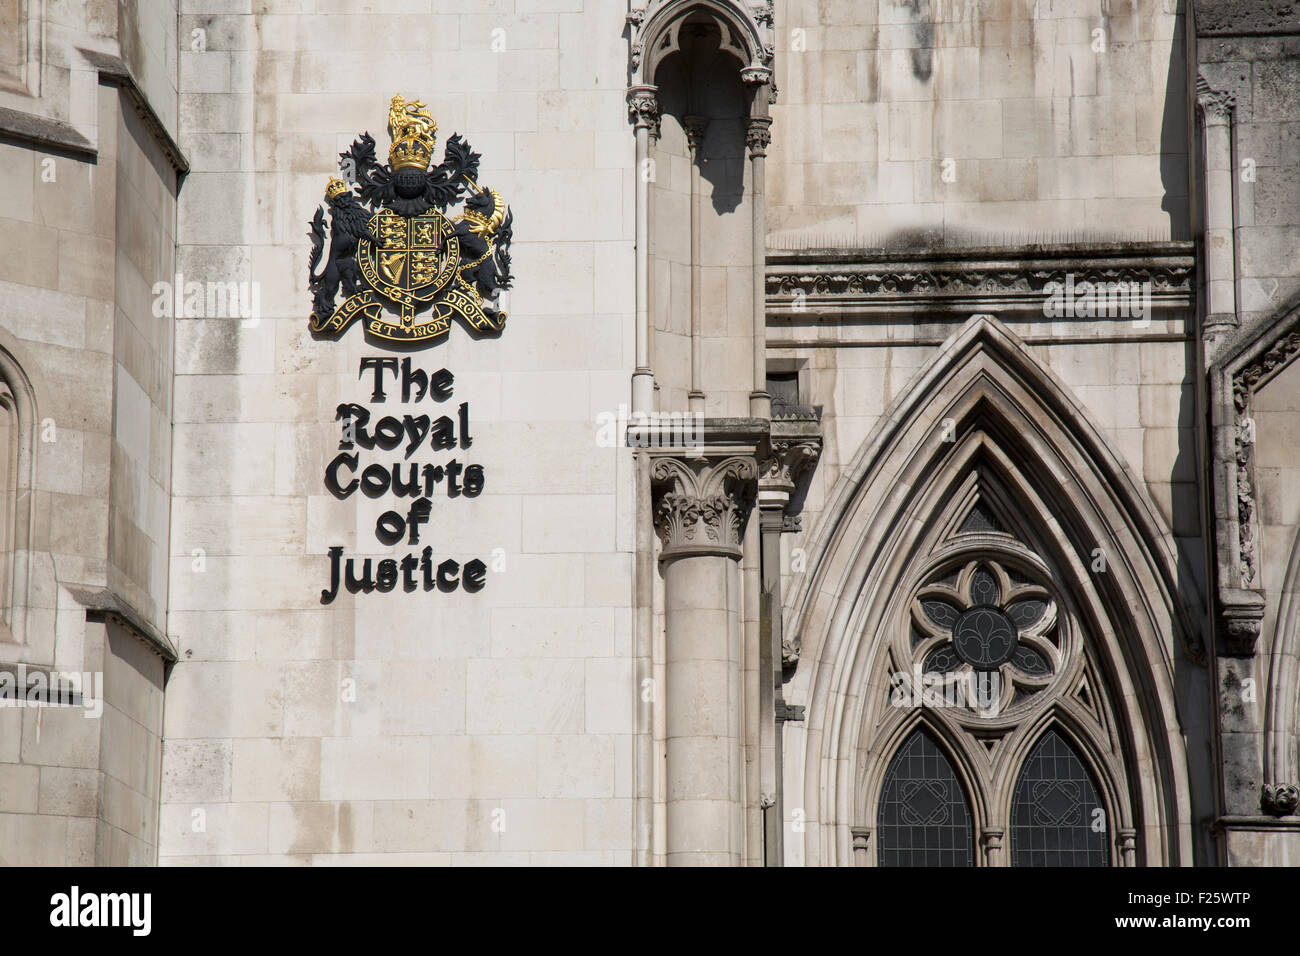 The Royal Courts of Justice, London,England. - Stock Image